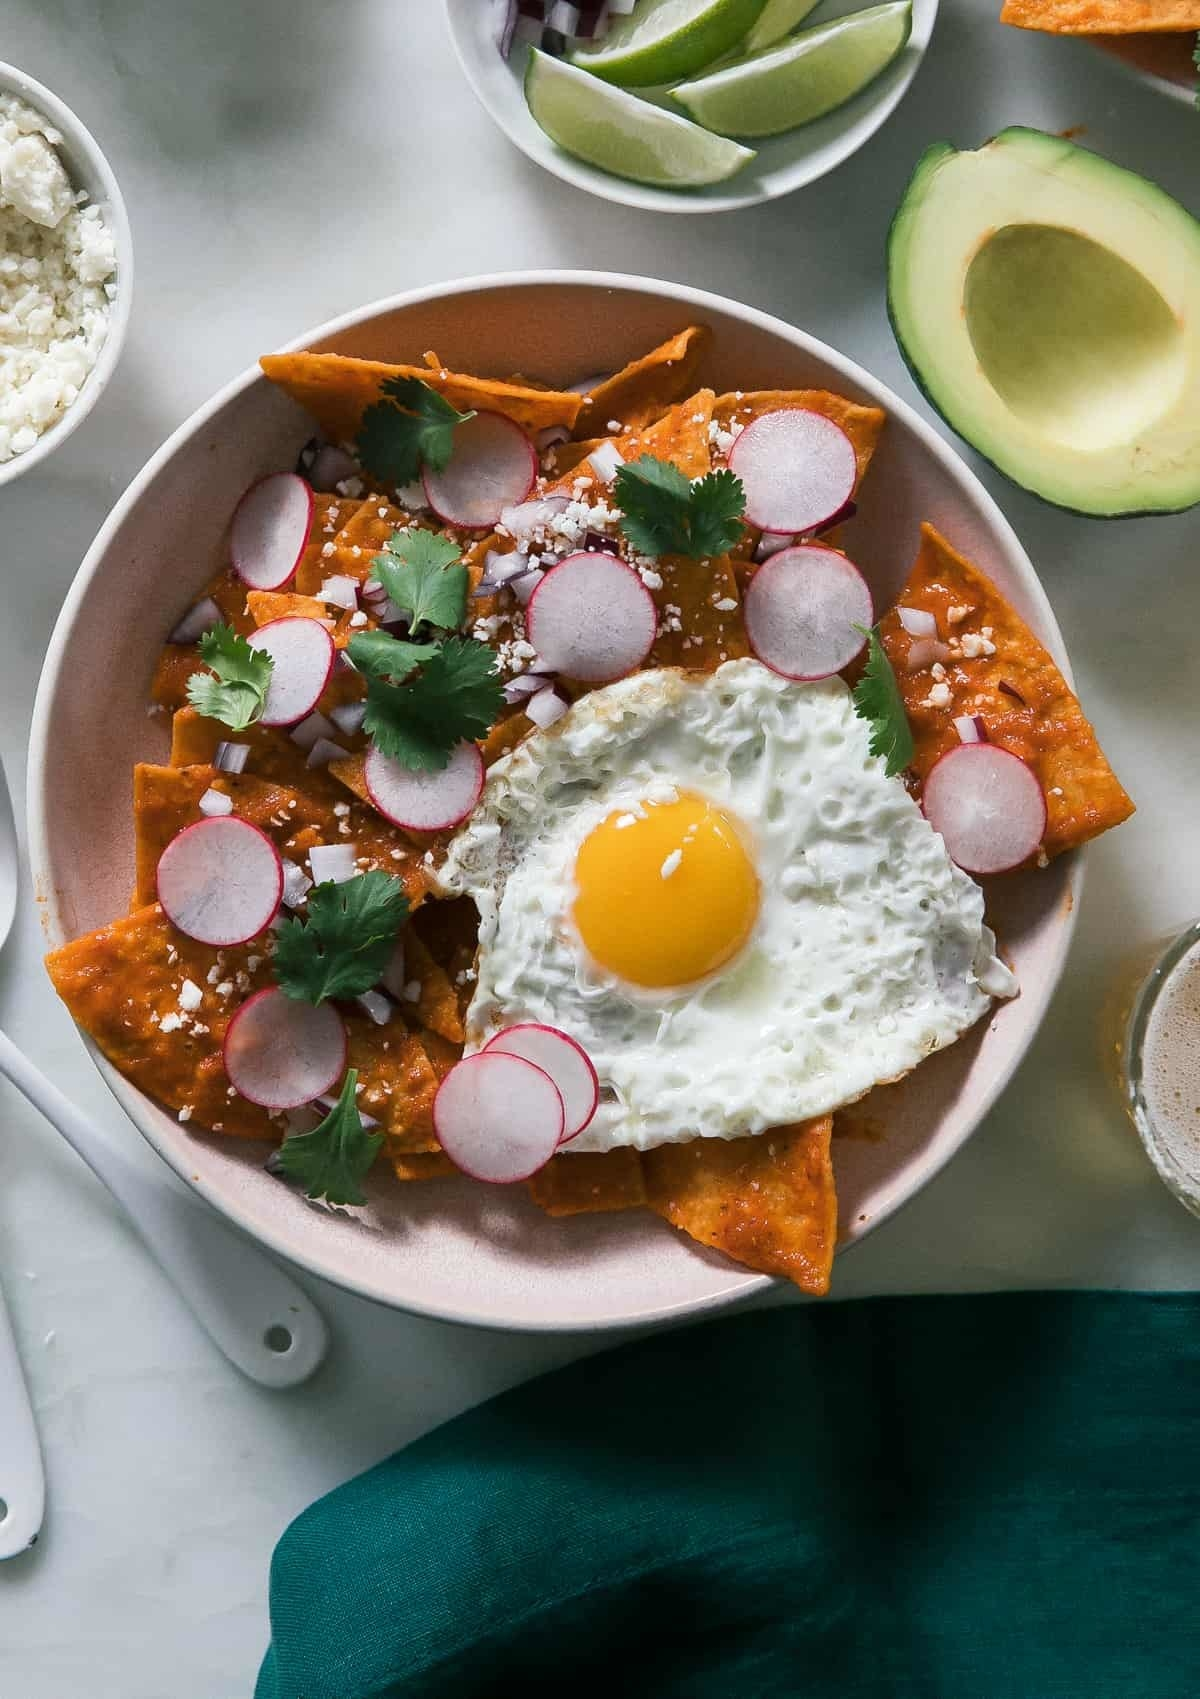 A plate covered in tortilla chips, which were tossed in a tomato sauce, topped with sliced radishes, cilantro, and a fried egg.